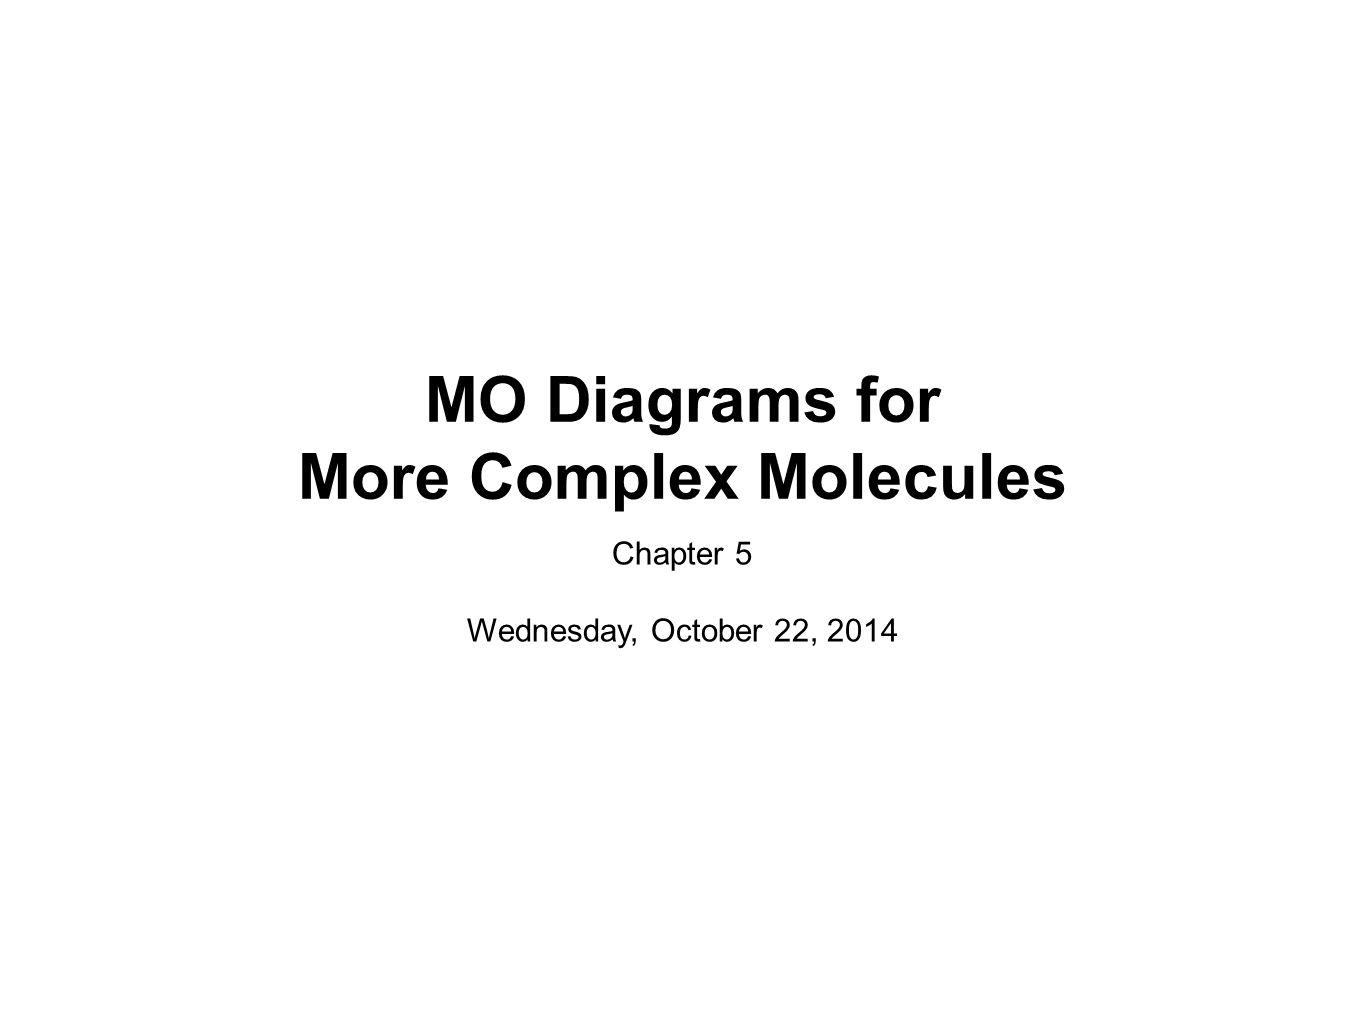 MO Diagrams for More Complex Molecules